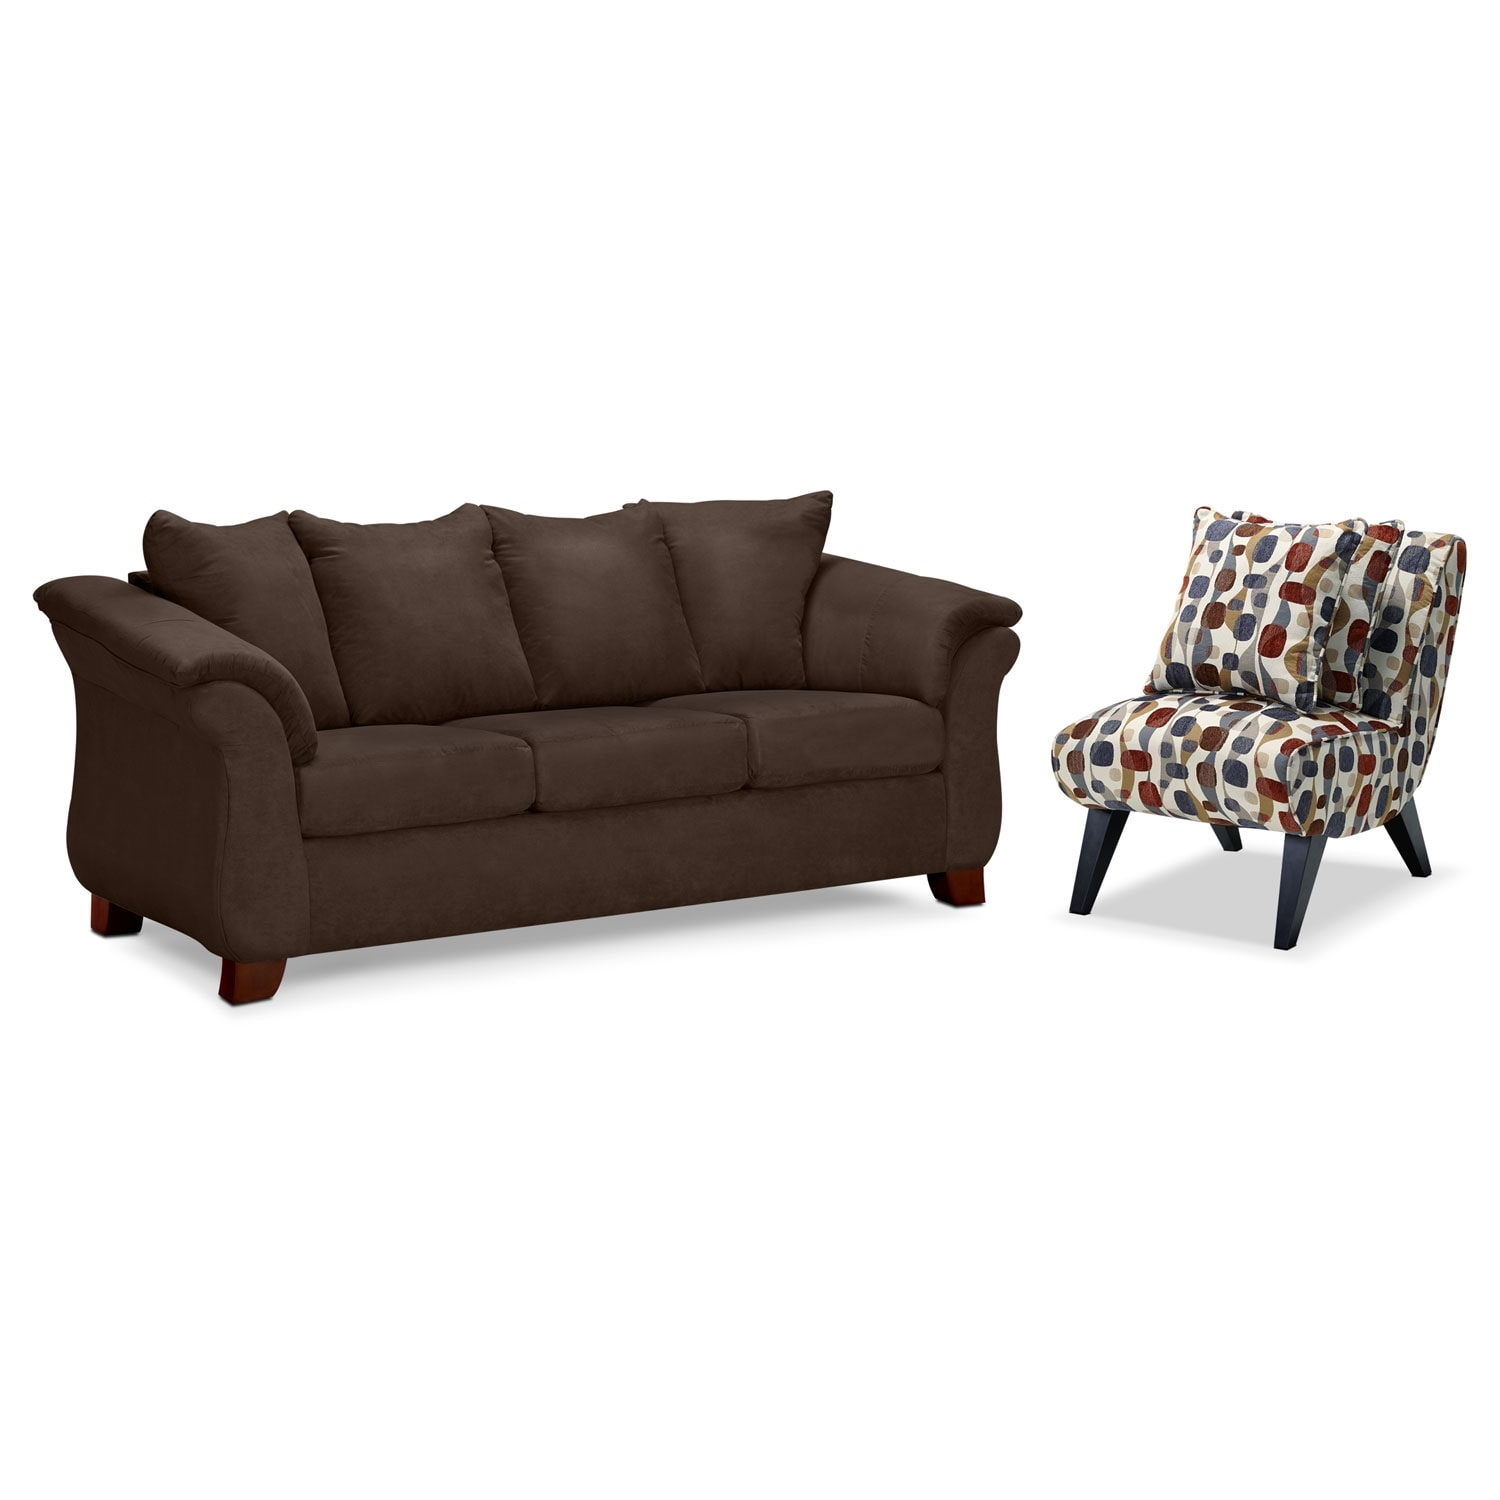 Adrian Sofa and Accent Chair Set - Chocolate